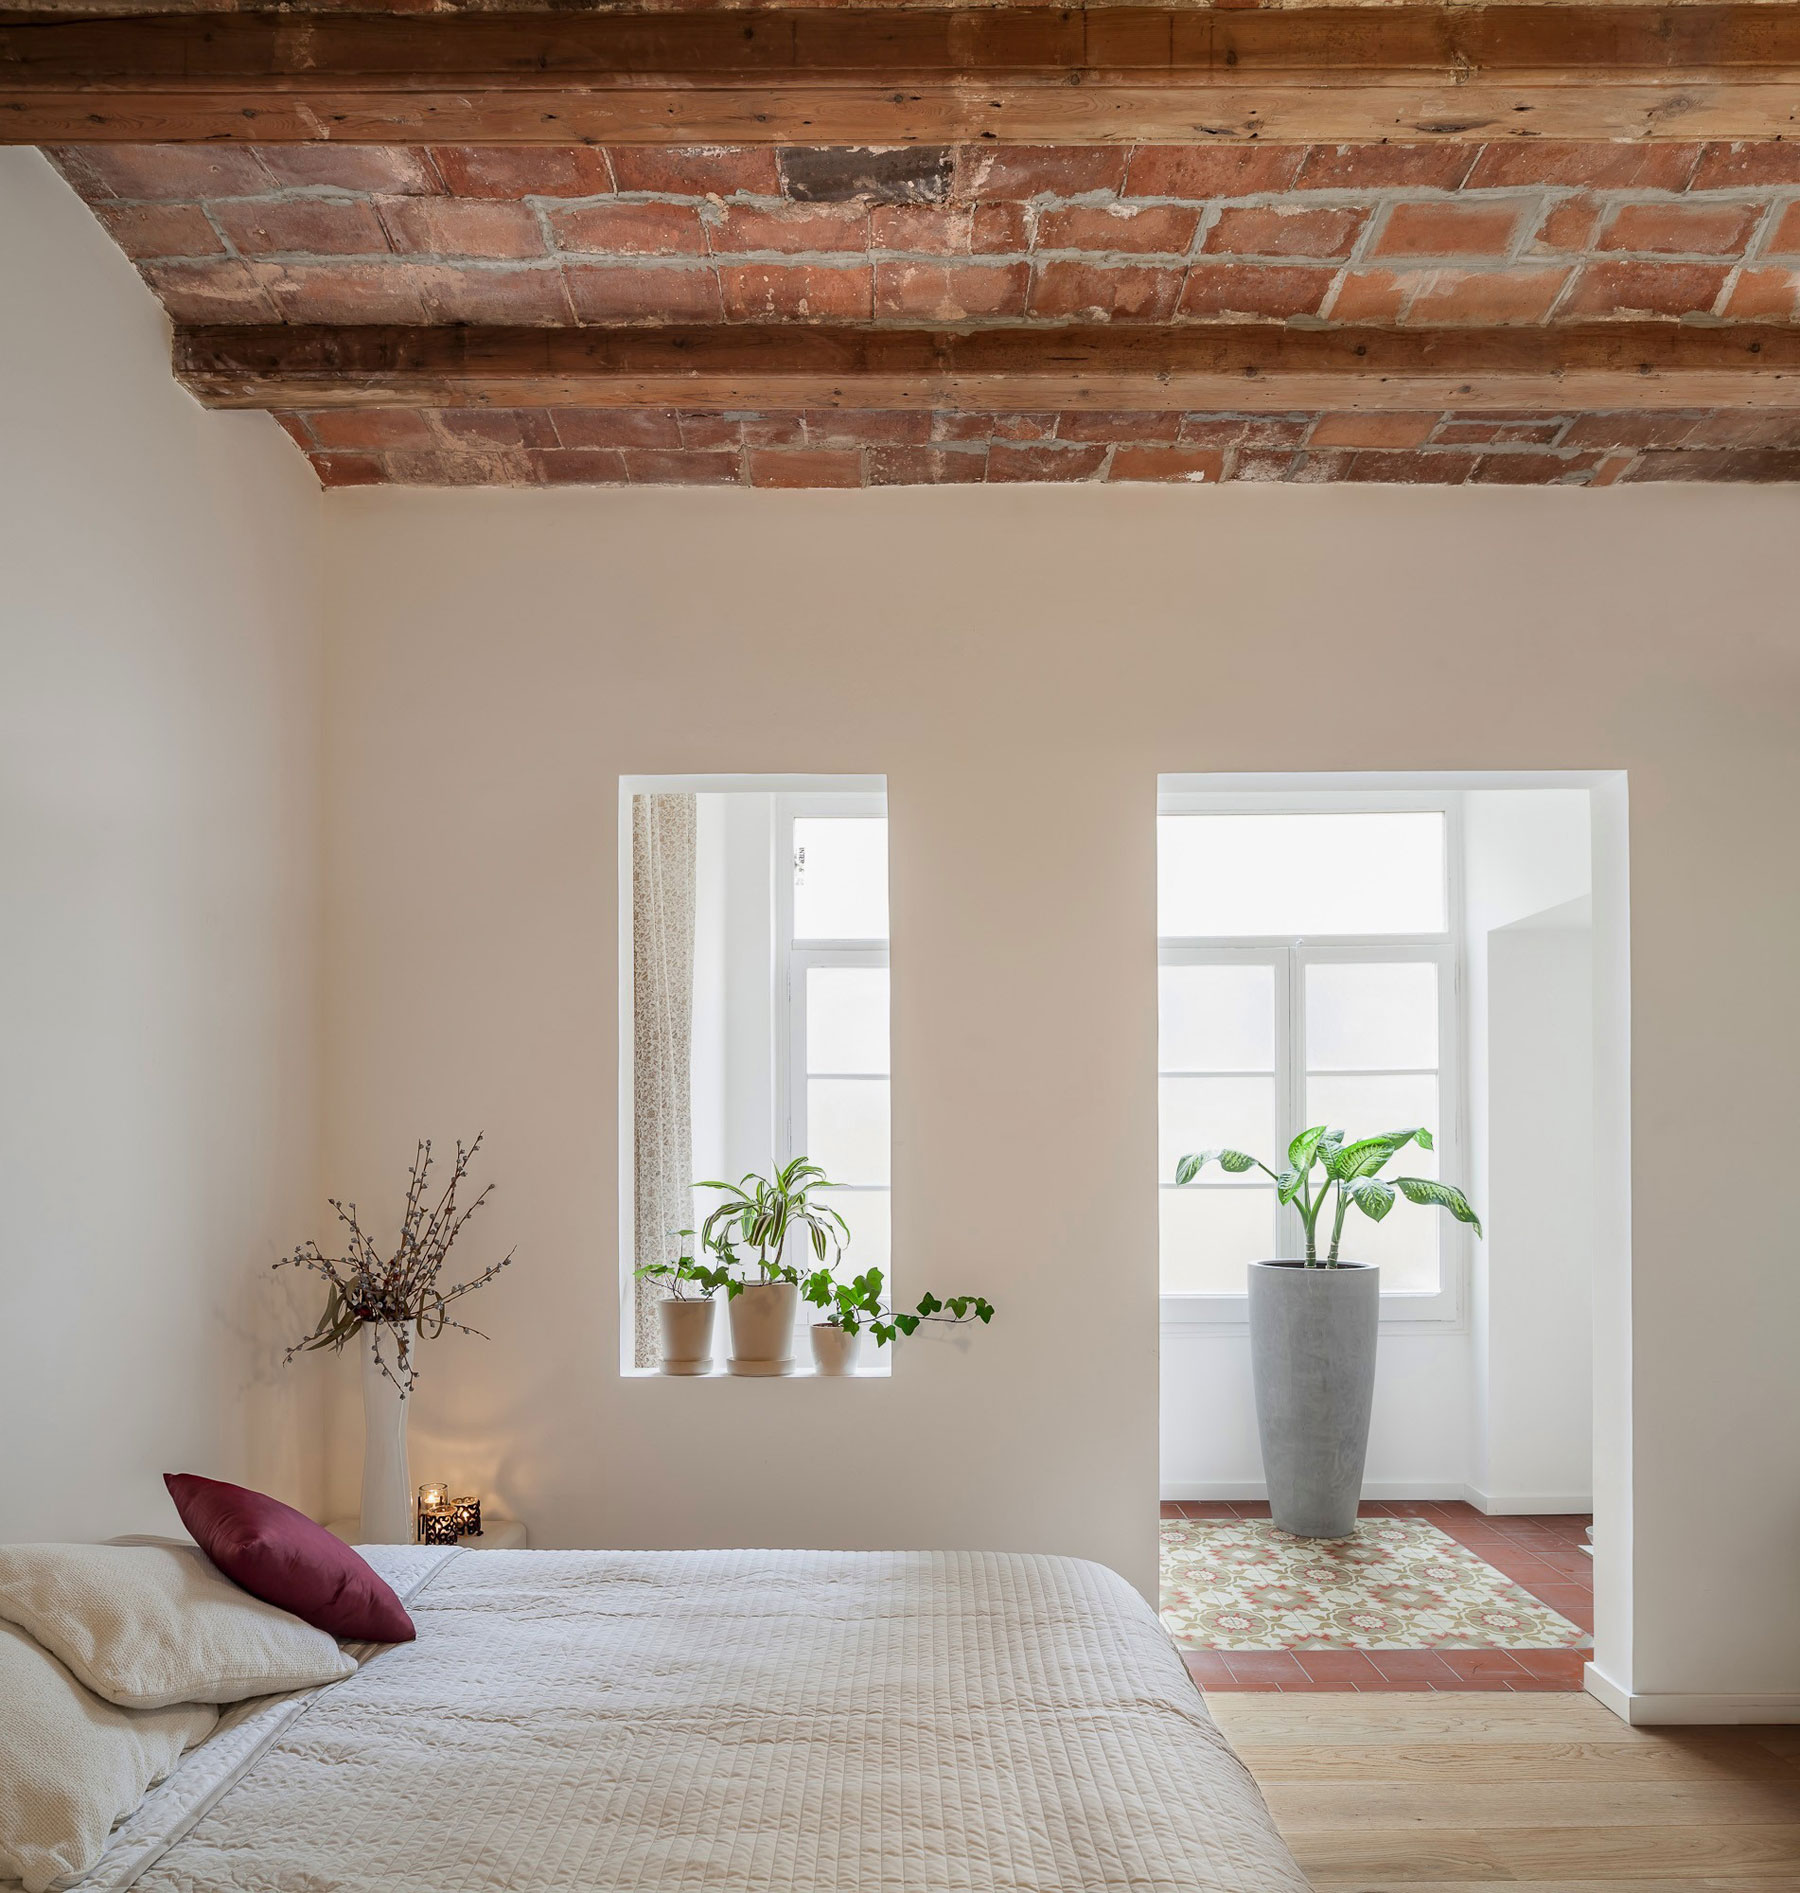 Renovation-Apartment-in-Les-Corts-balcony